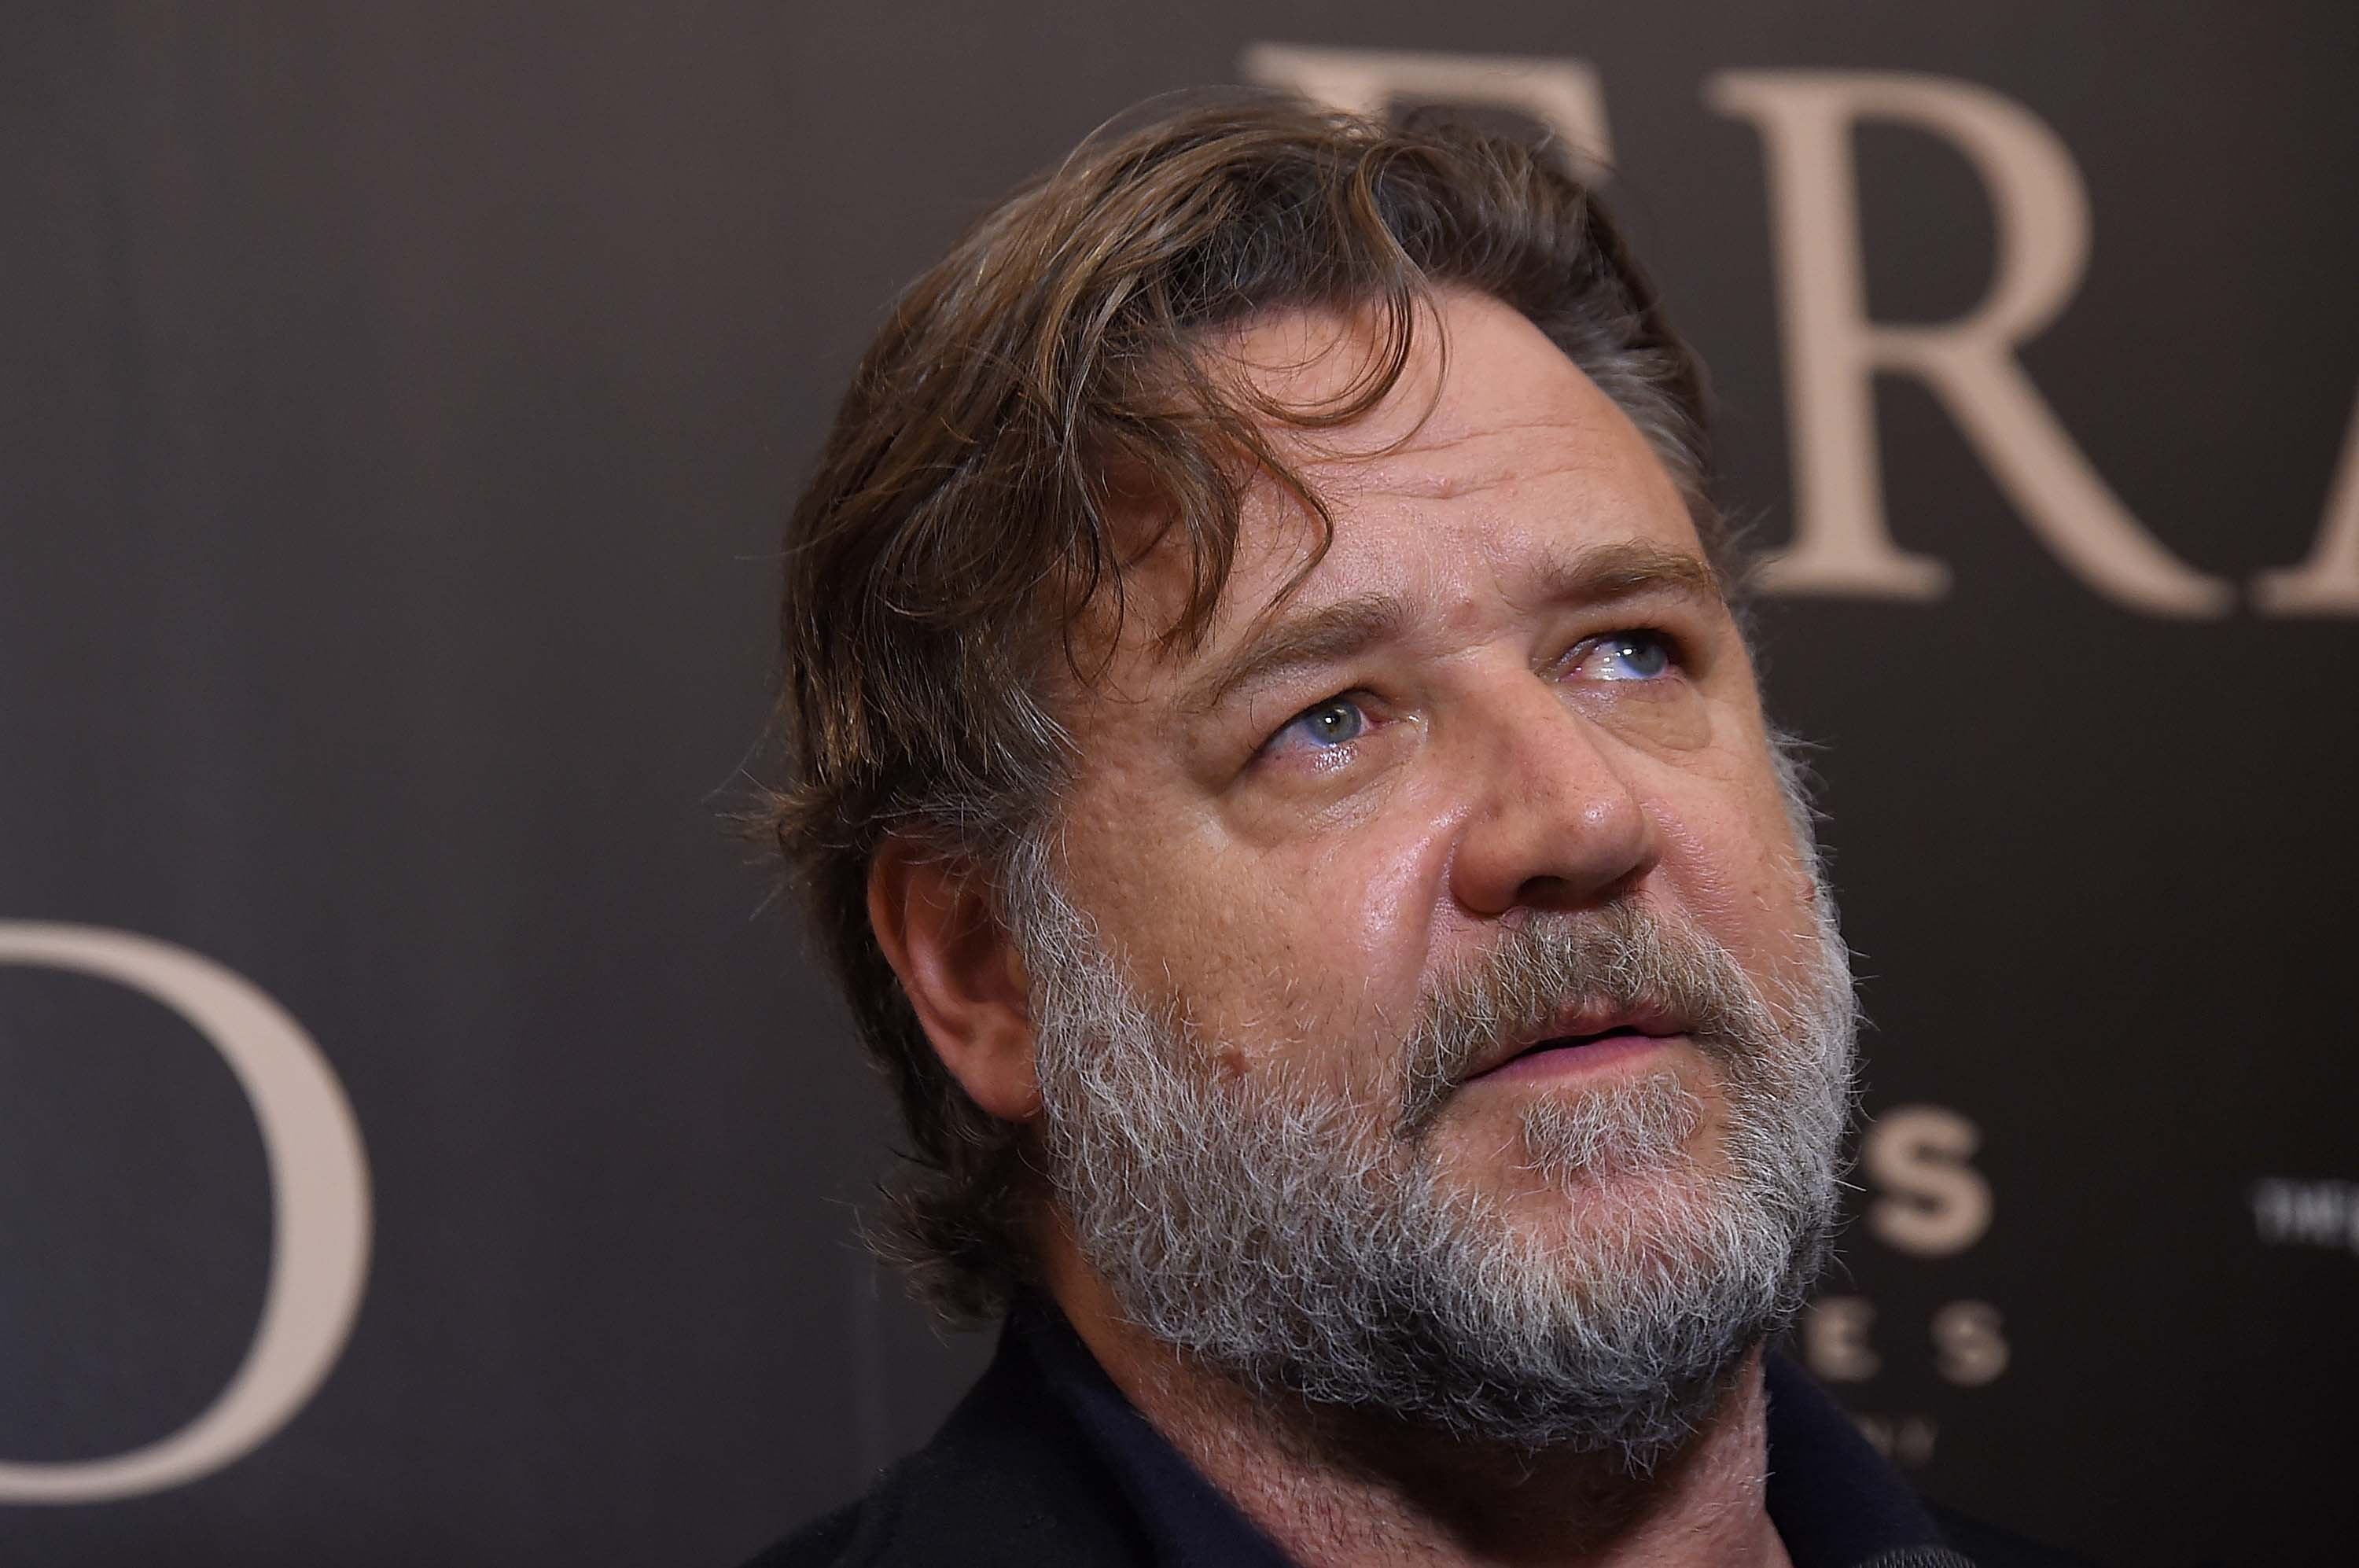 Russell Crowe has revealed his role in 'Thor: Love & Thunder'